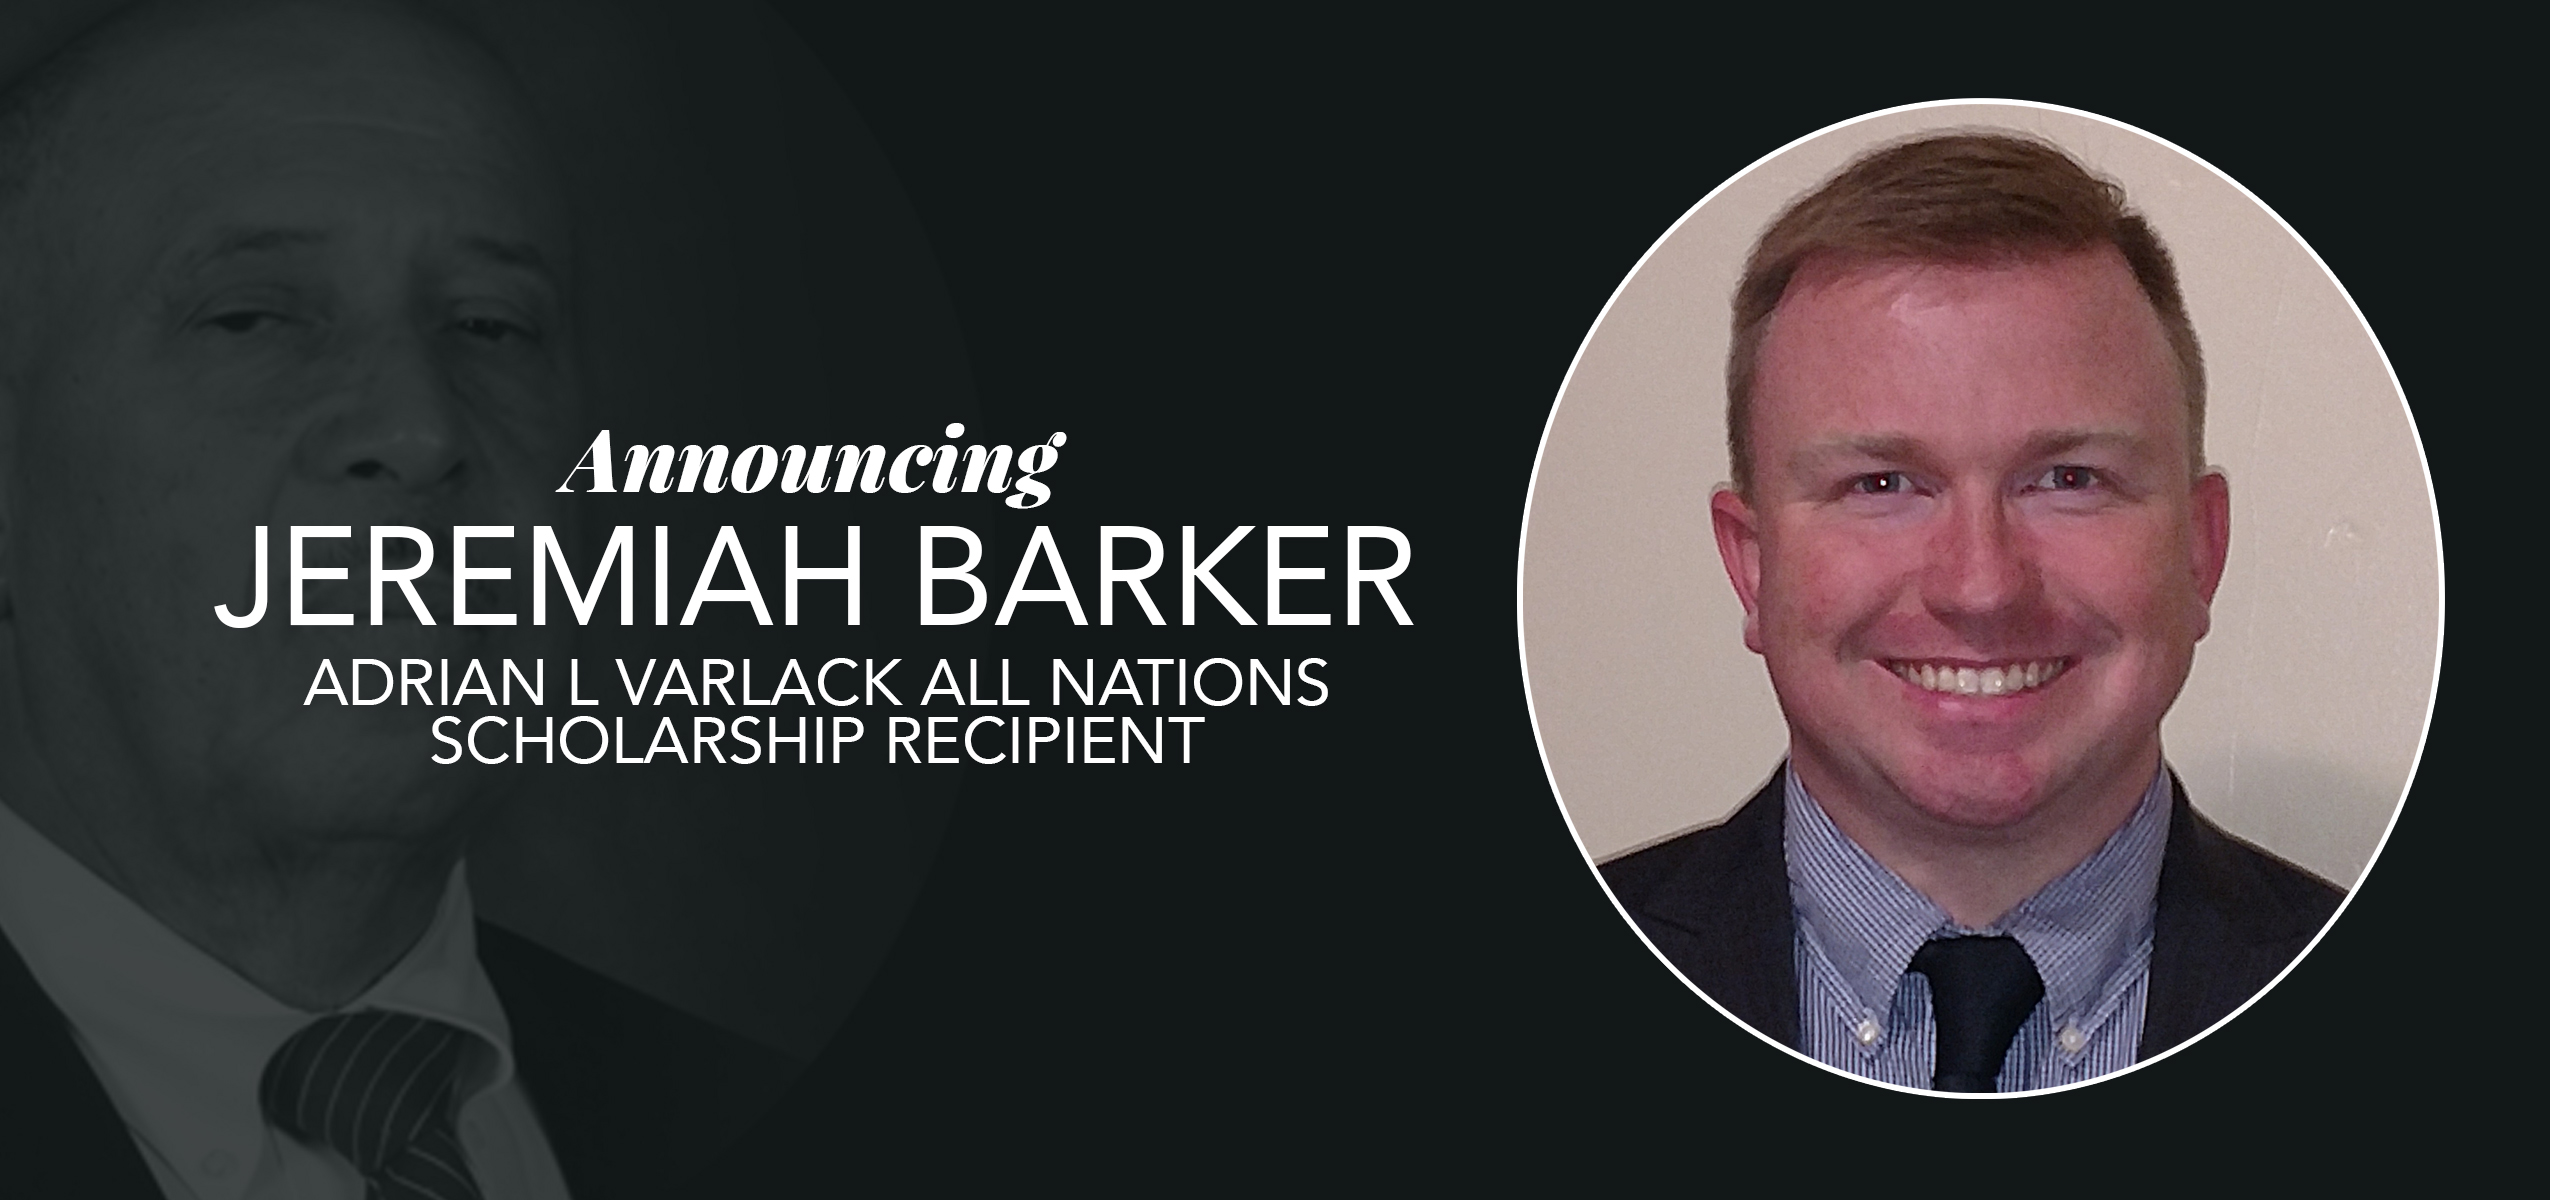 Adrian L. Varlack All Nations Scholarship Awarded to Jeremiah Barker